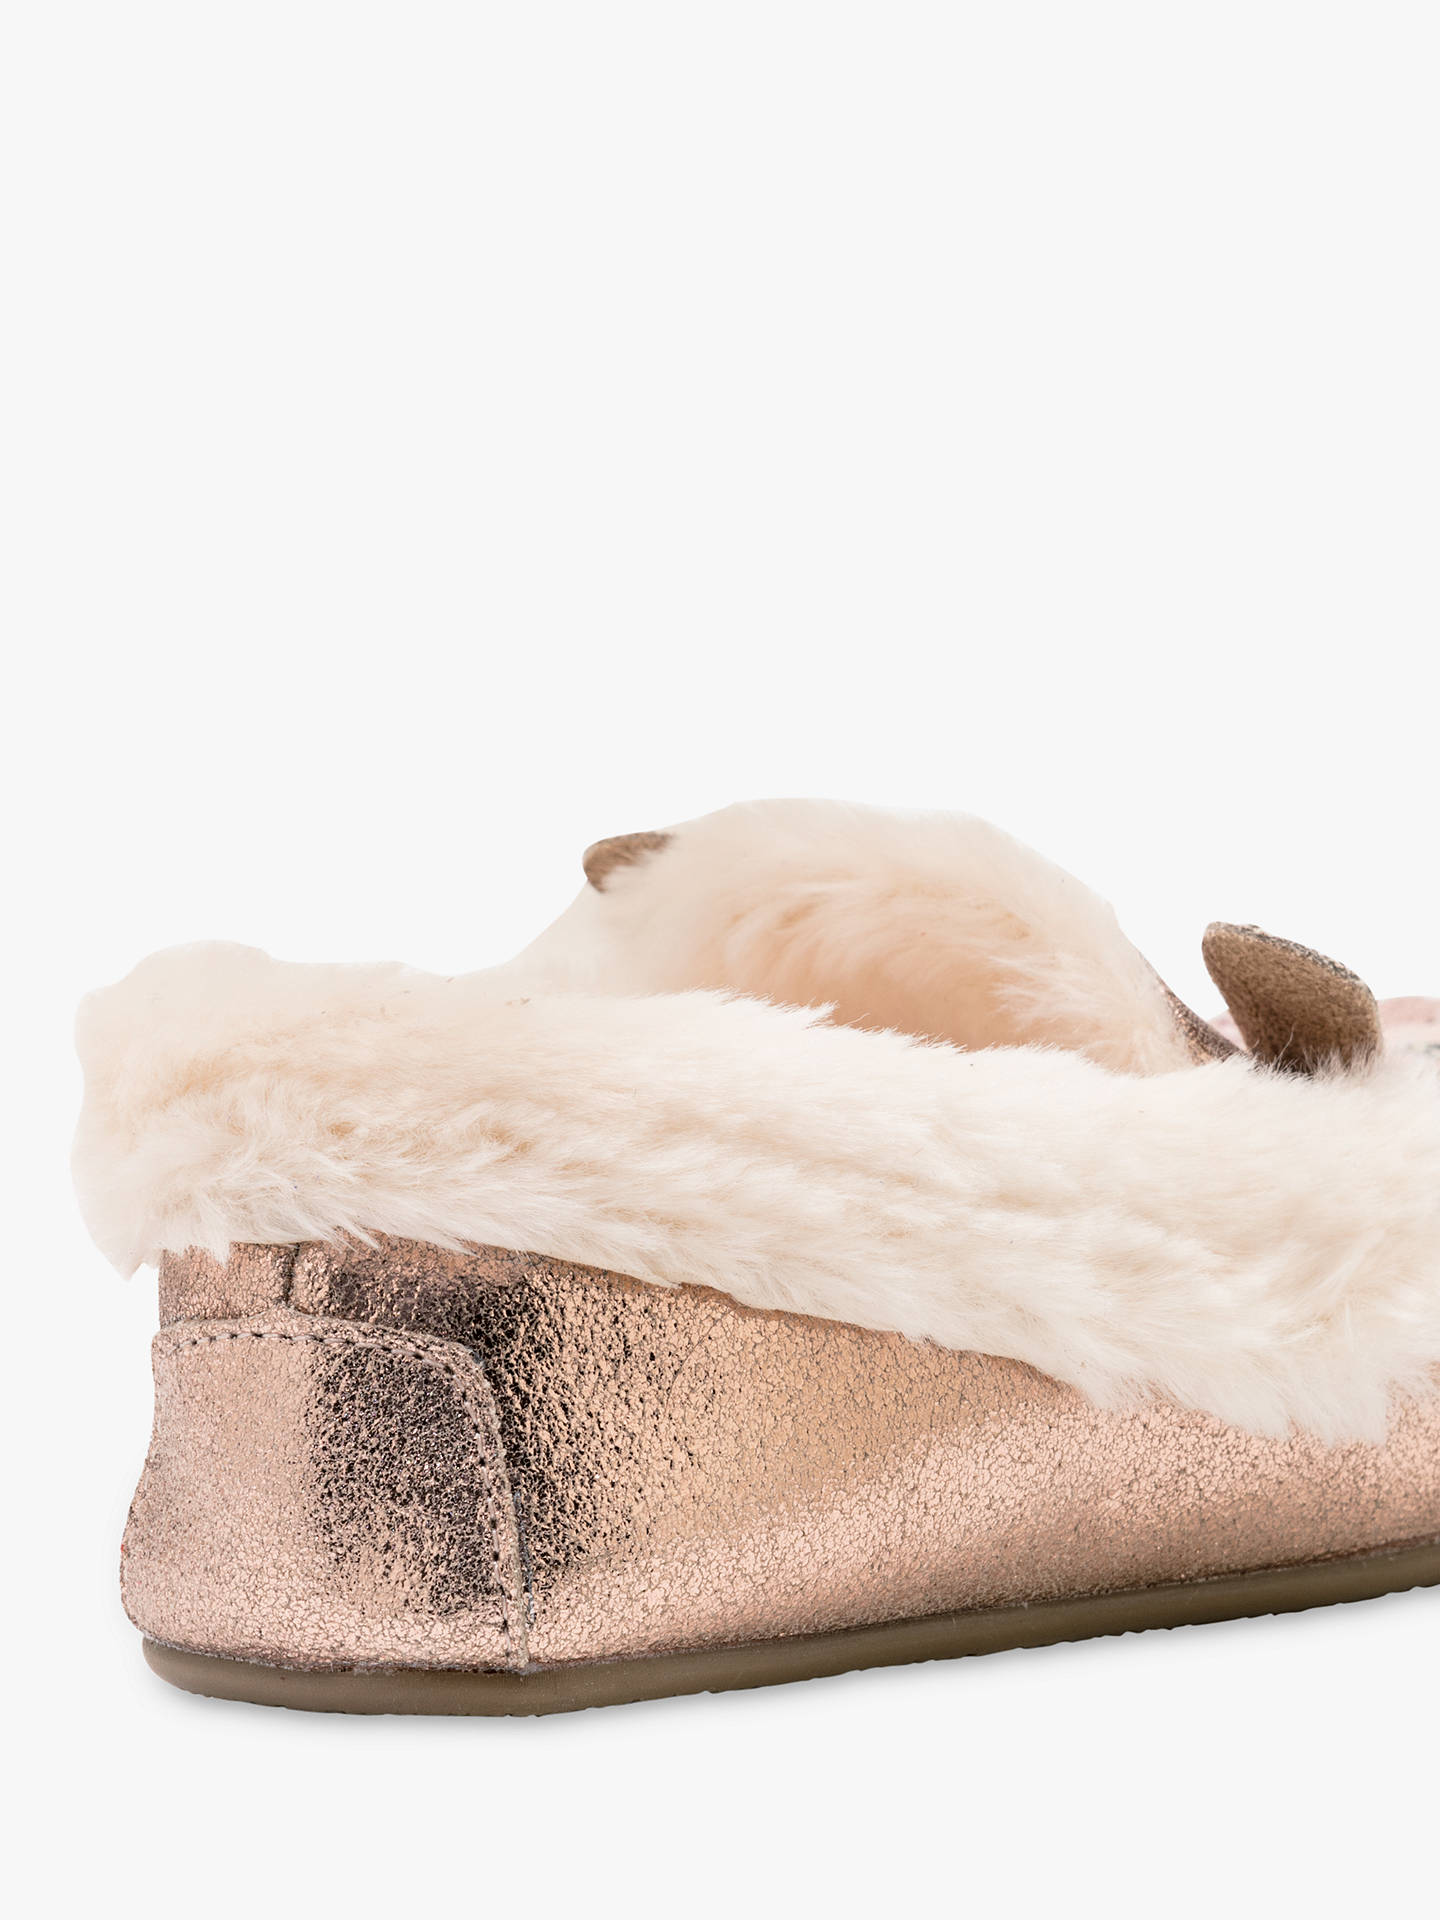 7bfc7f113f654 ... Buy Mini Boden Children's Sue Metallic Suede Slippers, Rose Gold, 34  Online at johnlewis ...